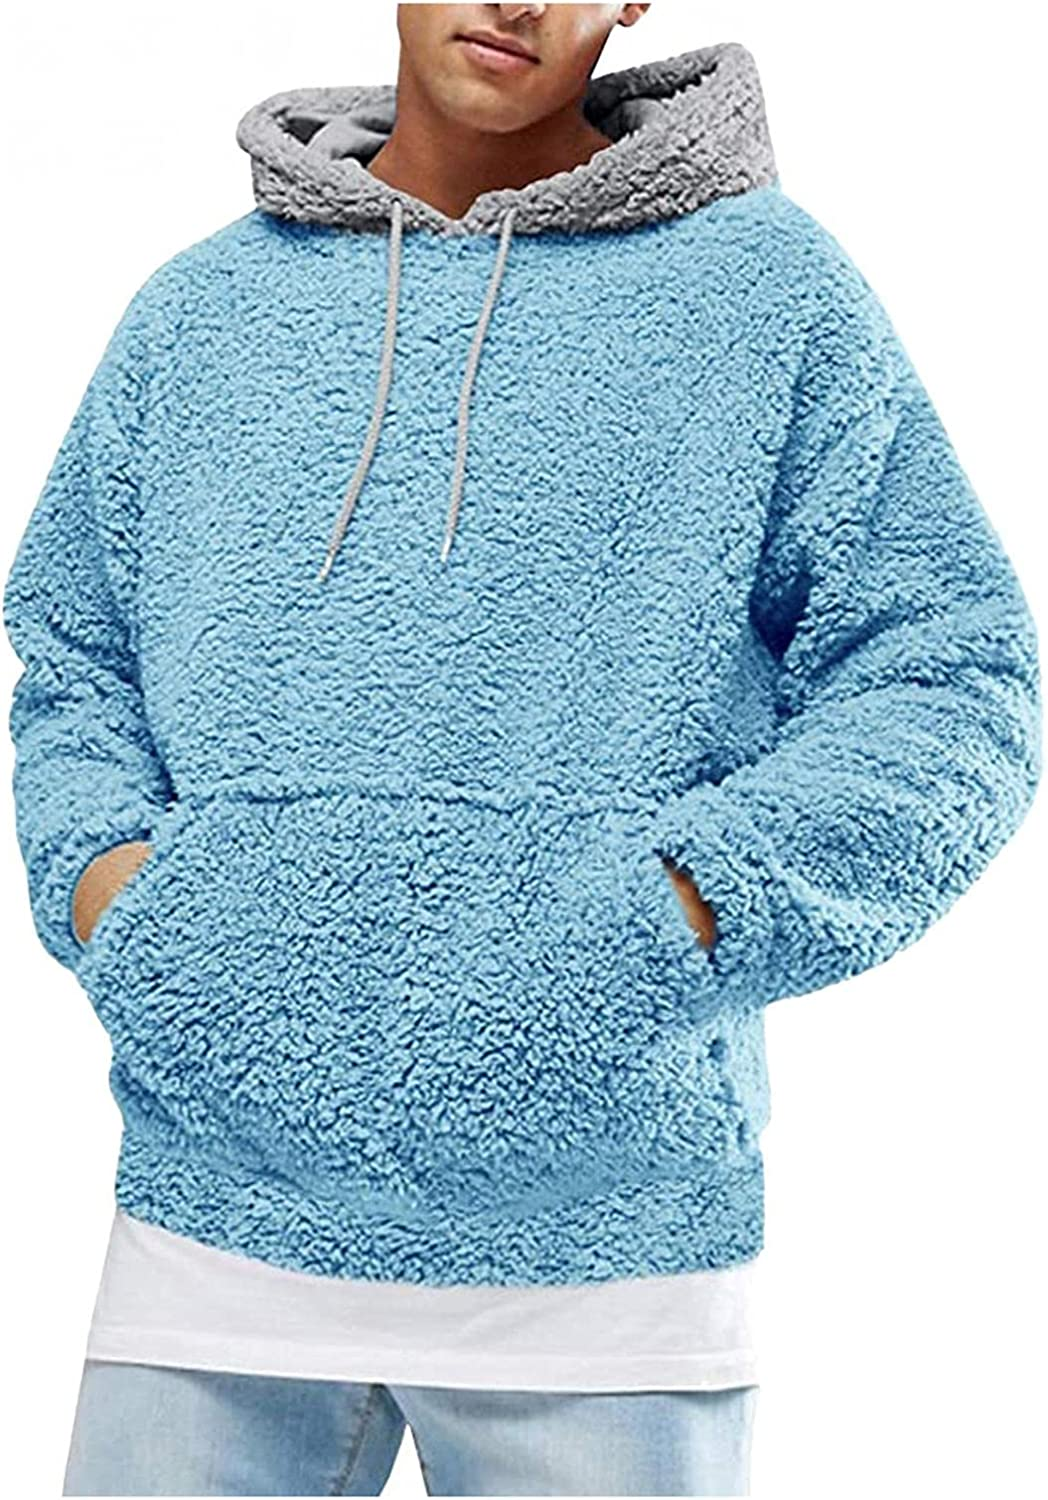 Mens Fuzzy Hooded Sweatershirts Soft Comfy Fleece Hoodies Sweaters Classic Sherpa Pullover Blouse Thicken Thermal Tops